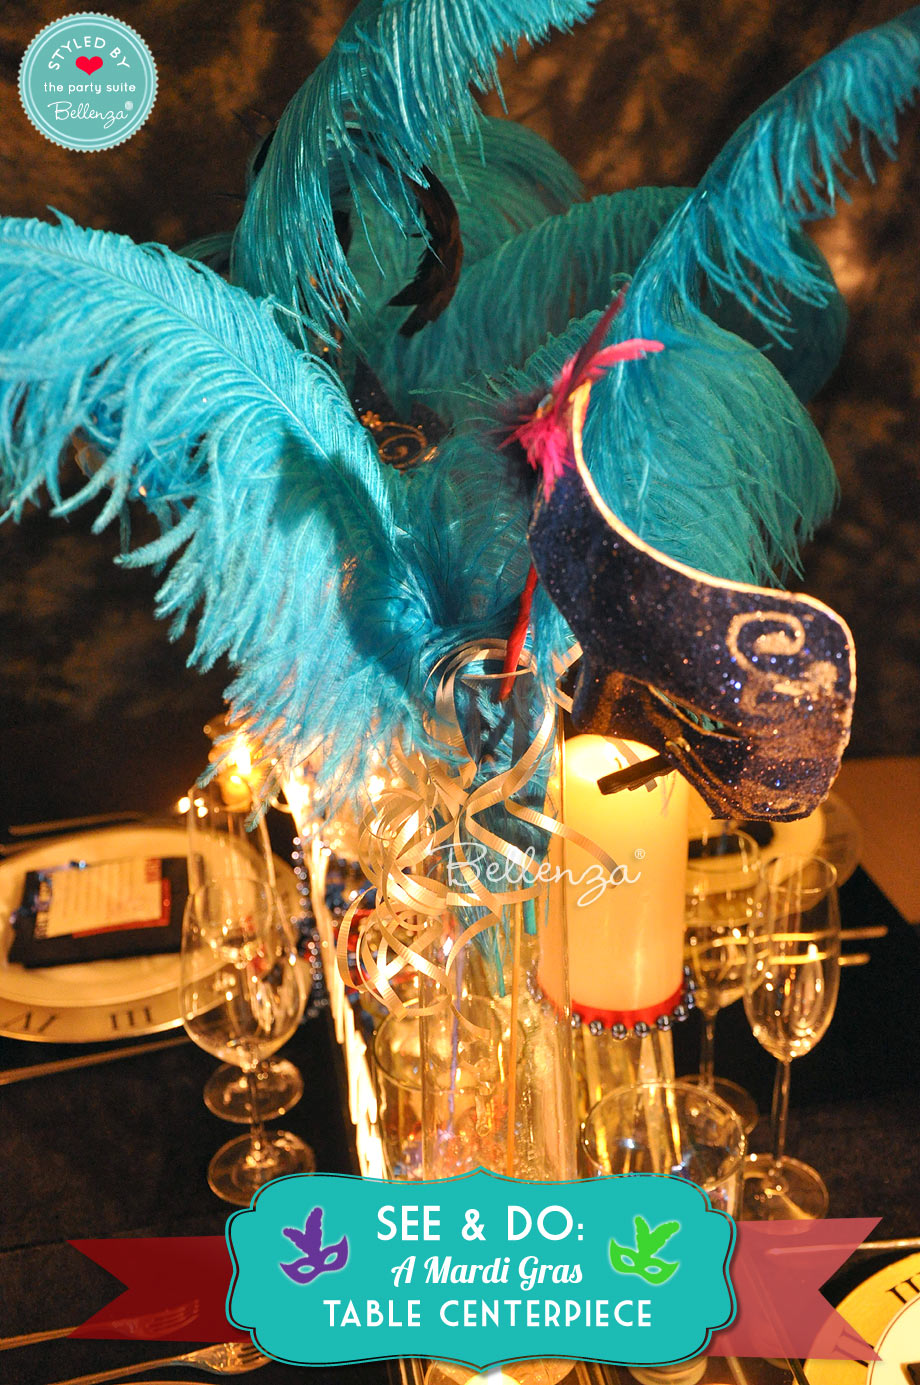 Teal colored Mardi Gras feathers.